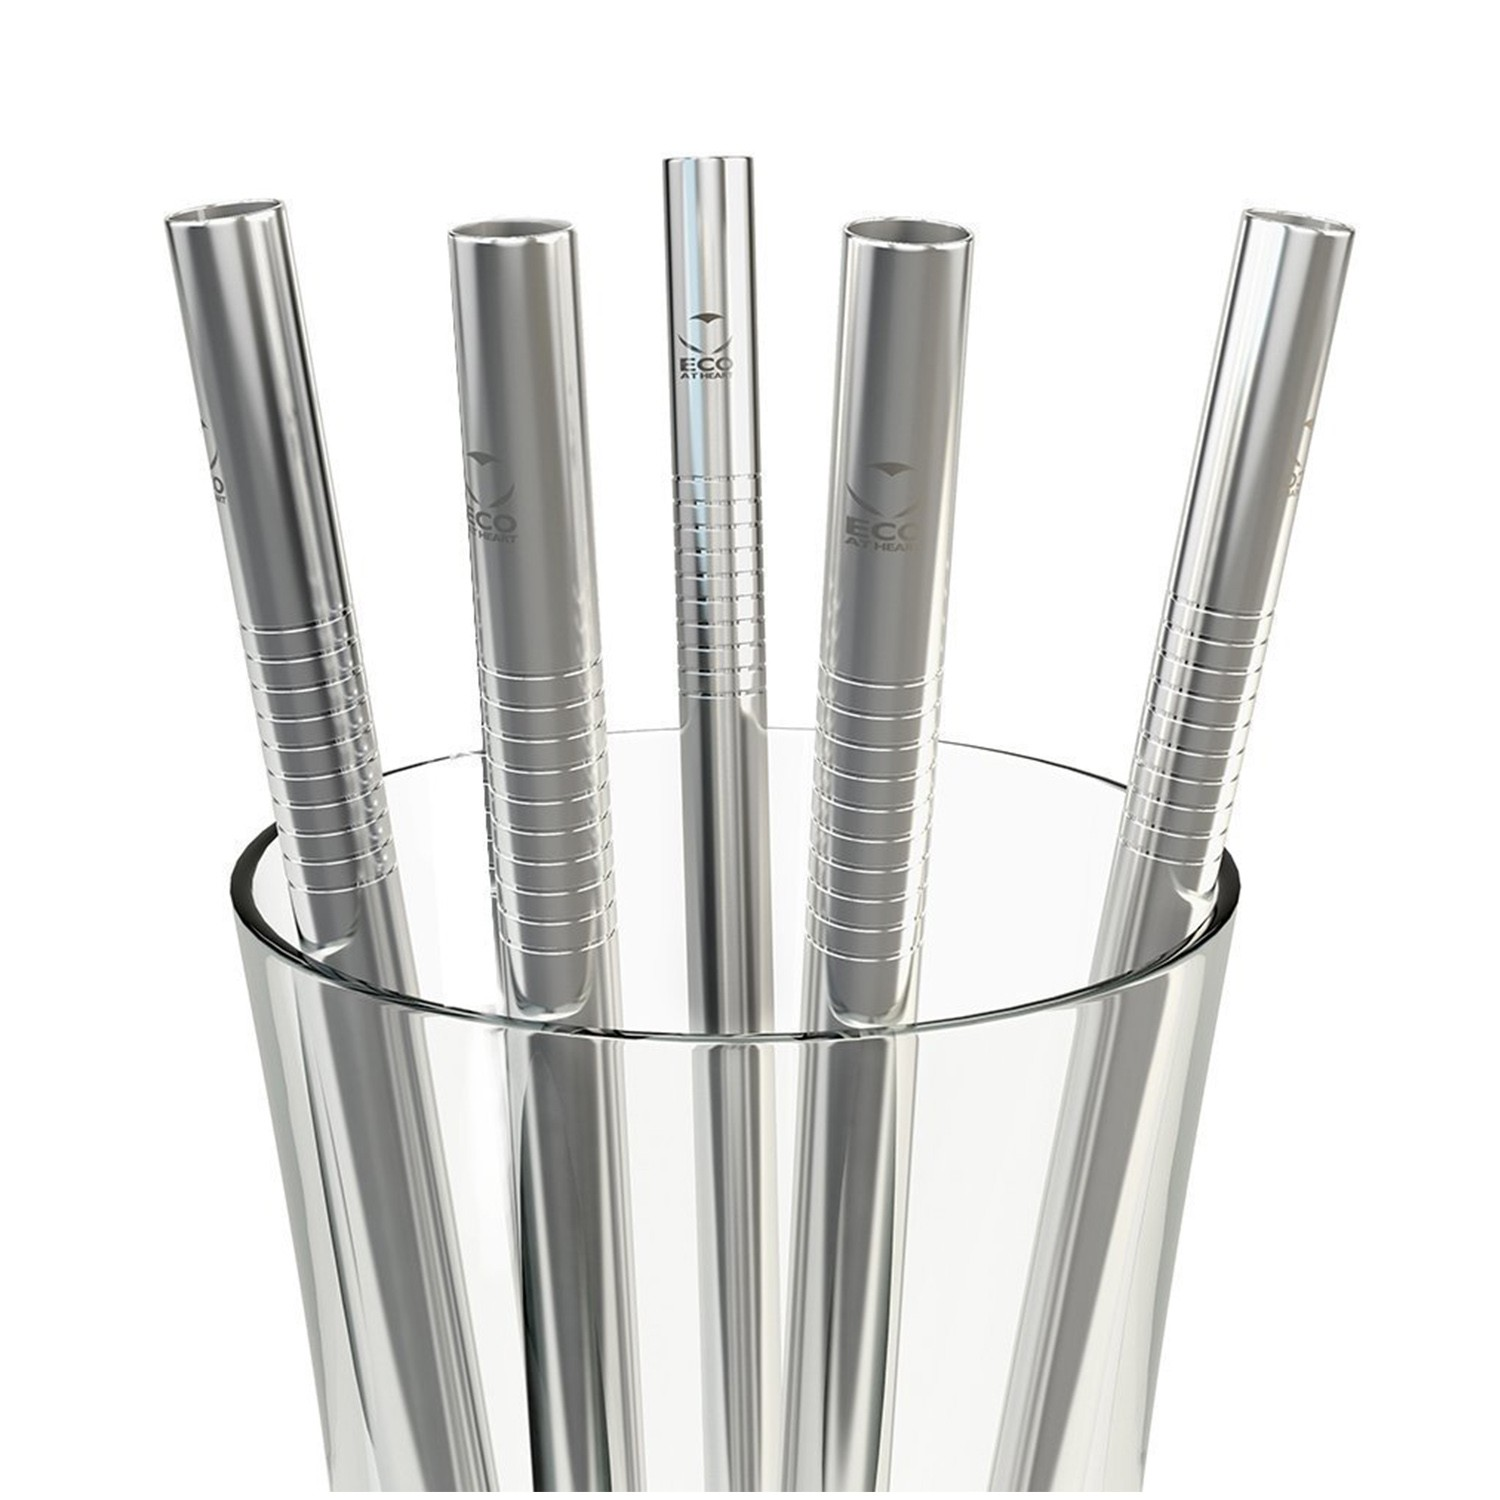 Reusable Metal Stainless Steel Wide Smoothie Straws